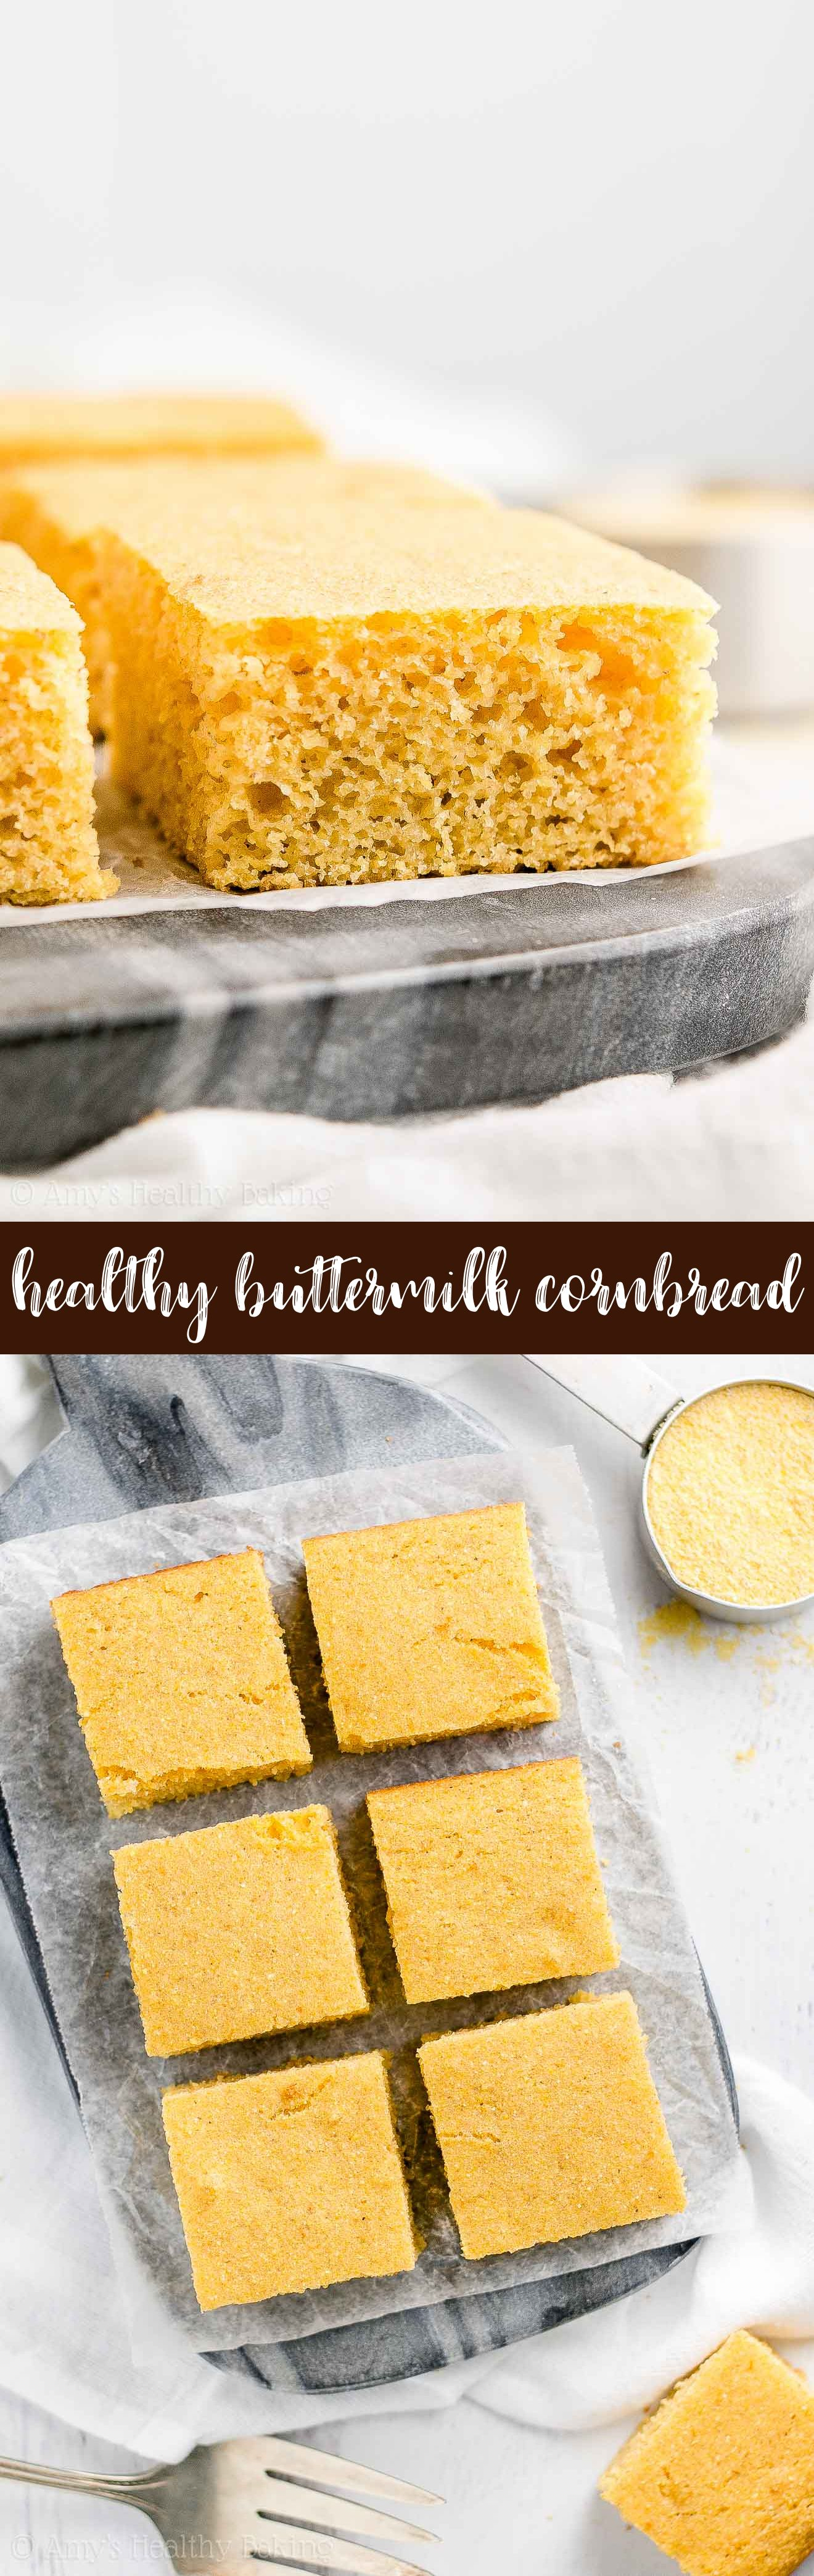 Healthy Buttermilk Cornbread Only 54 Calories It S So Moist Tender Thanks To Greek Yogurt And Buttermilk Cornbread Clean Eating Desserts Healthy Sweets